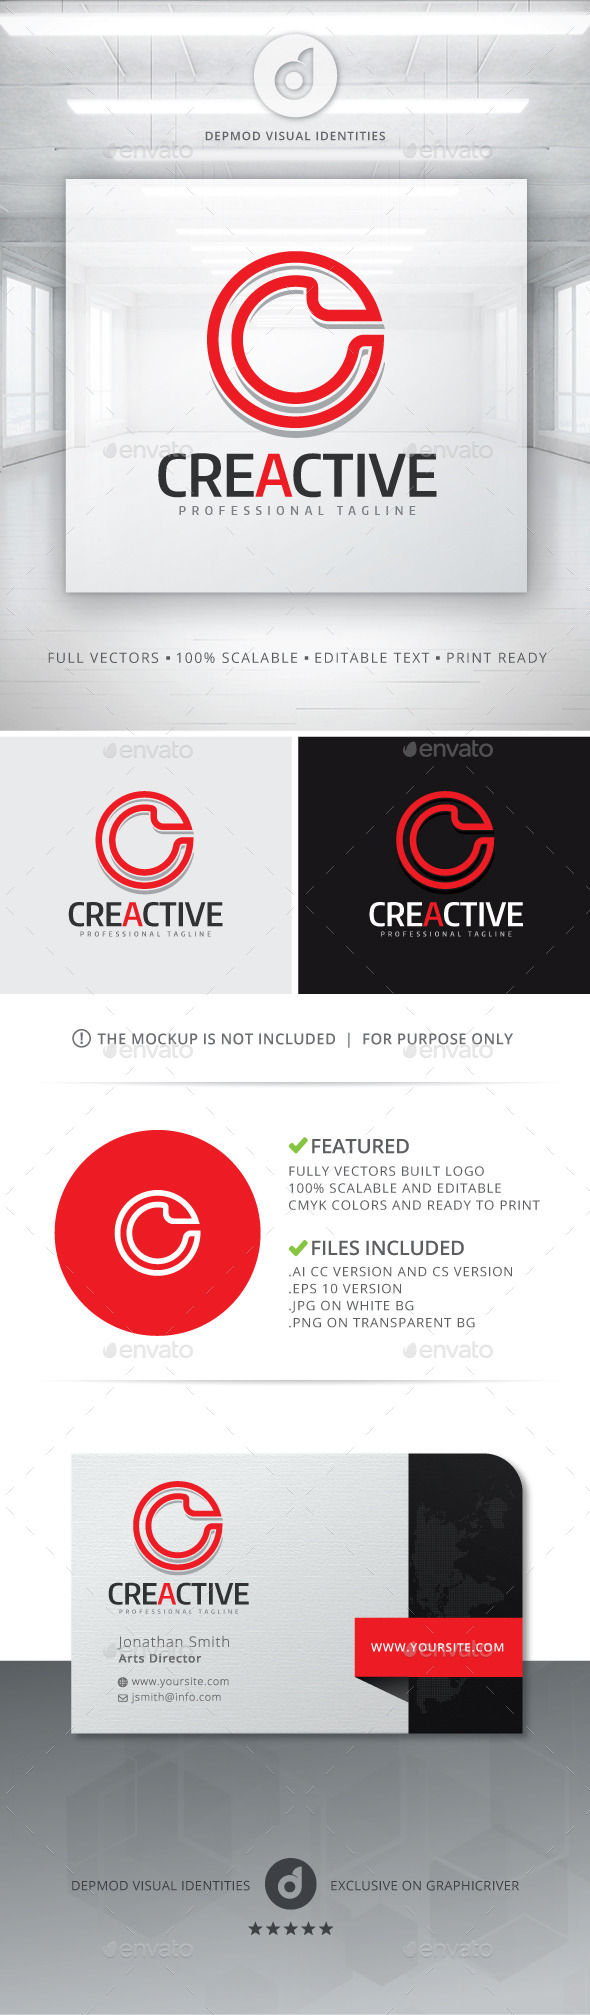 GraphicRiver Creactive Logo 10721632